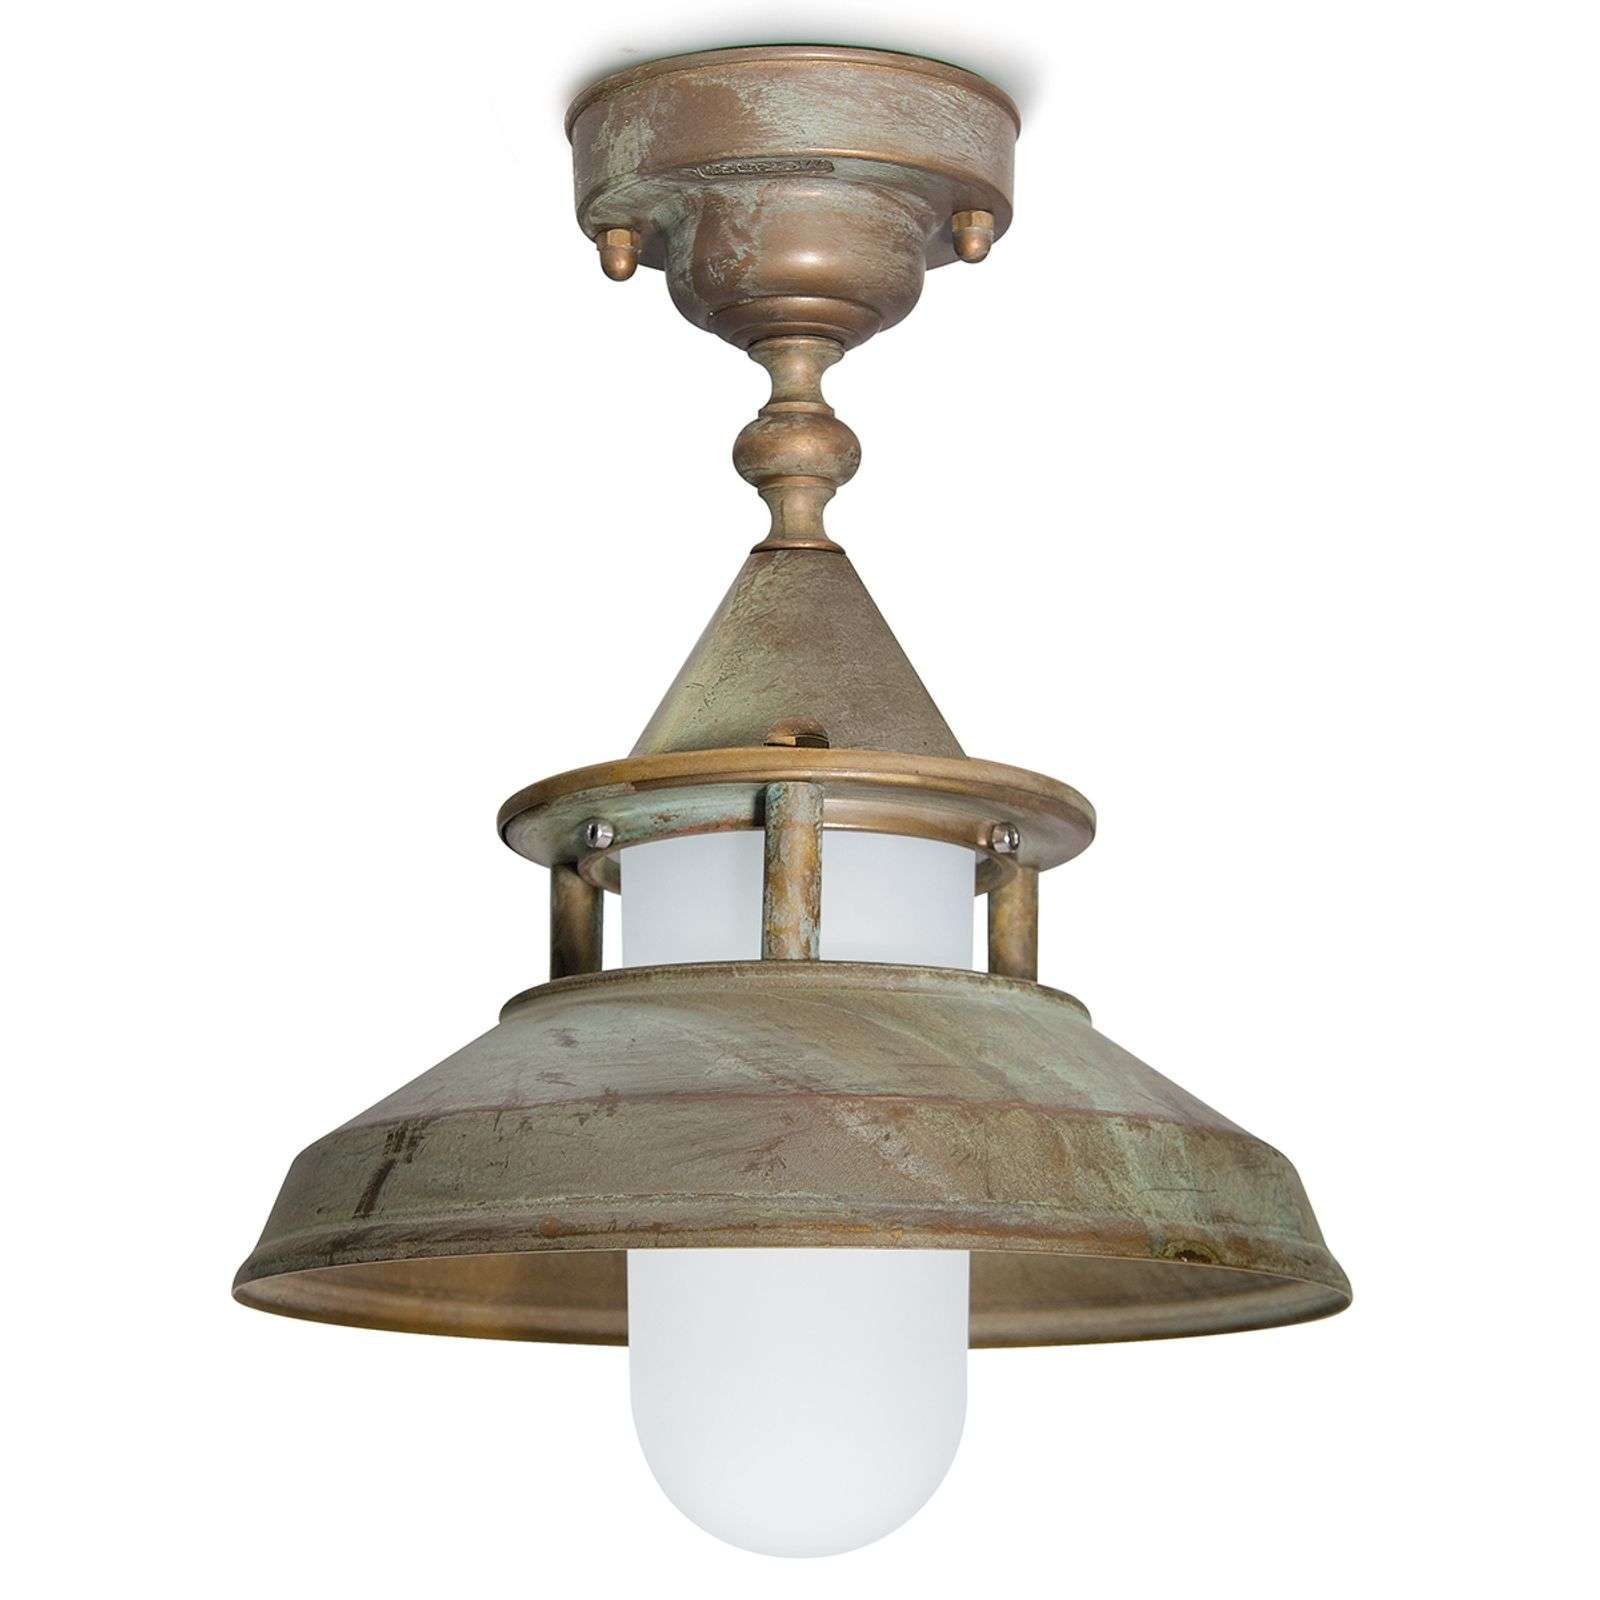 Plafondlamp Antique antiekfinish zeewaterbestendig